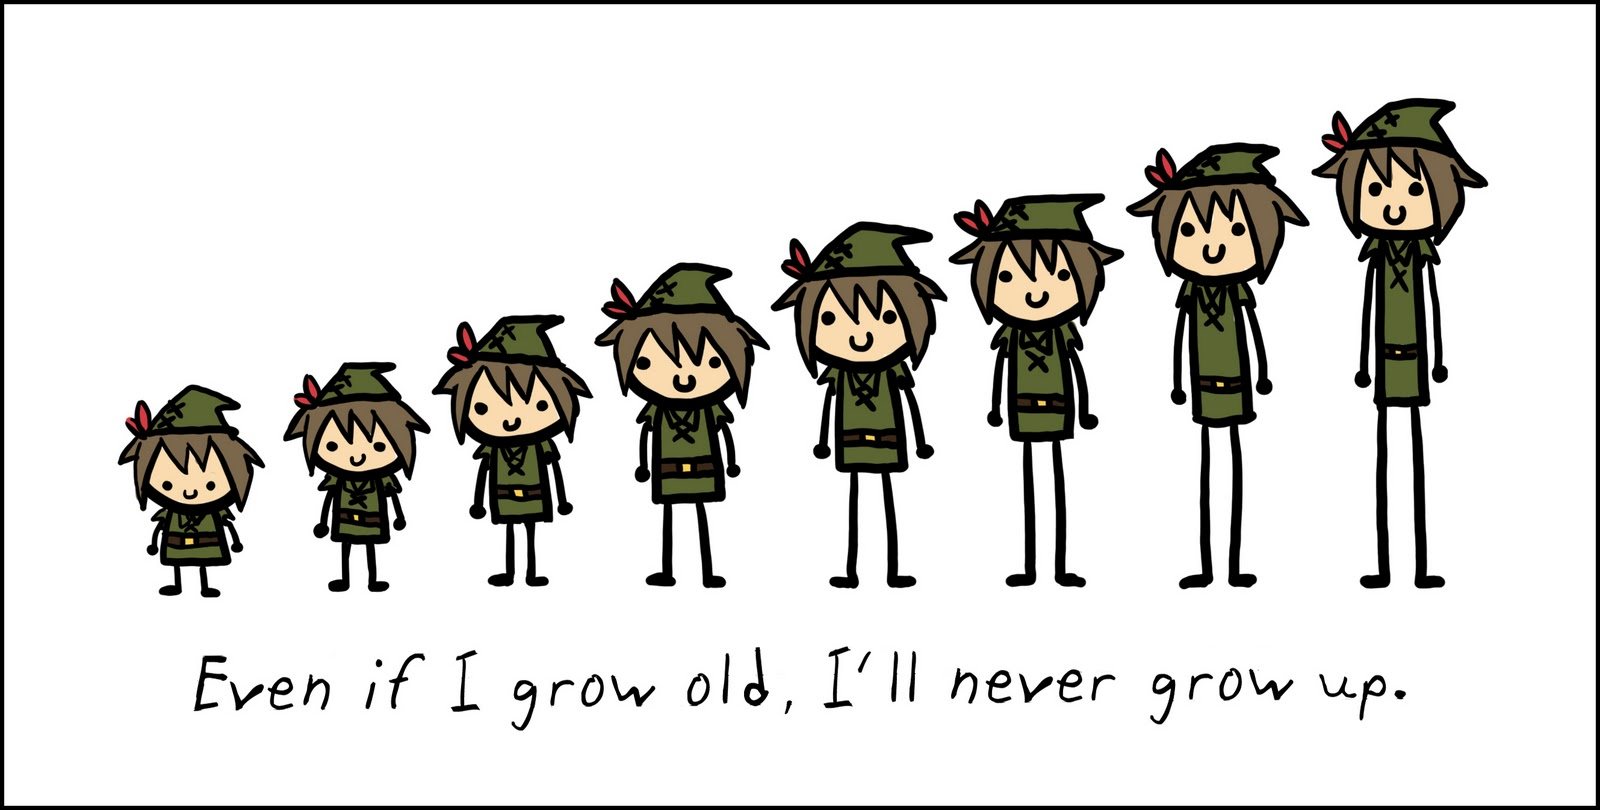 When is it time to grow up?